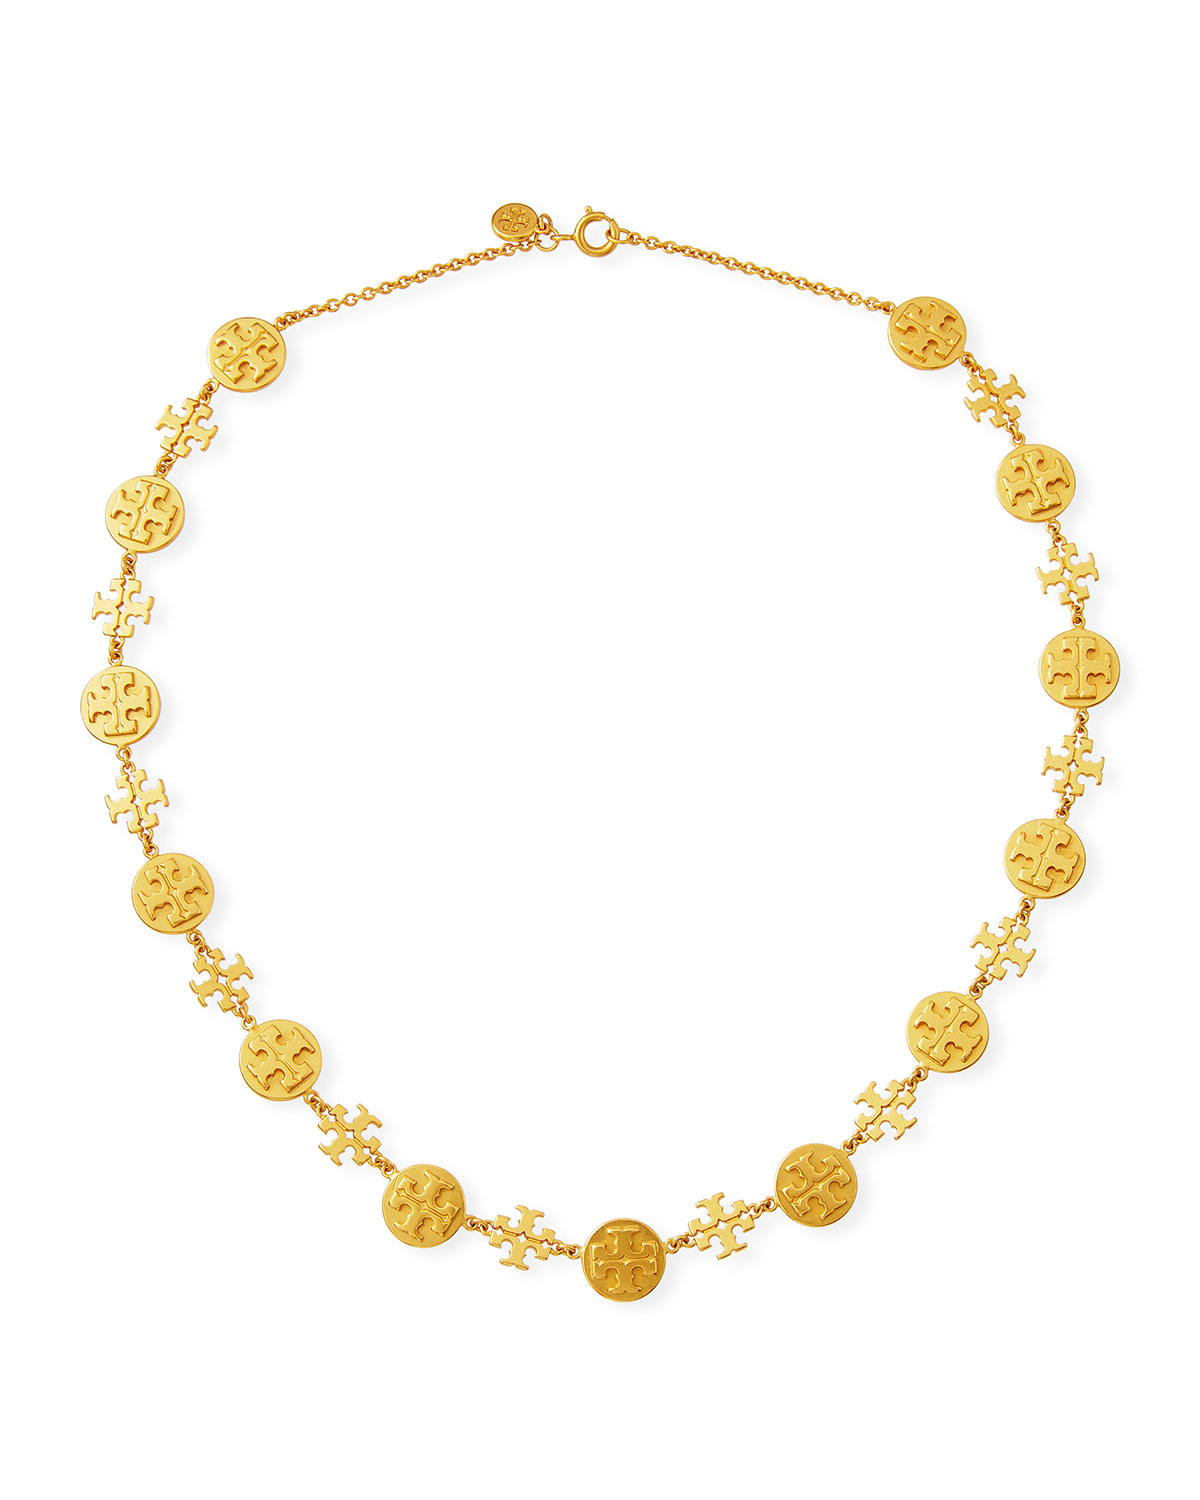 Logo Charm Necklace by Tory Burch